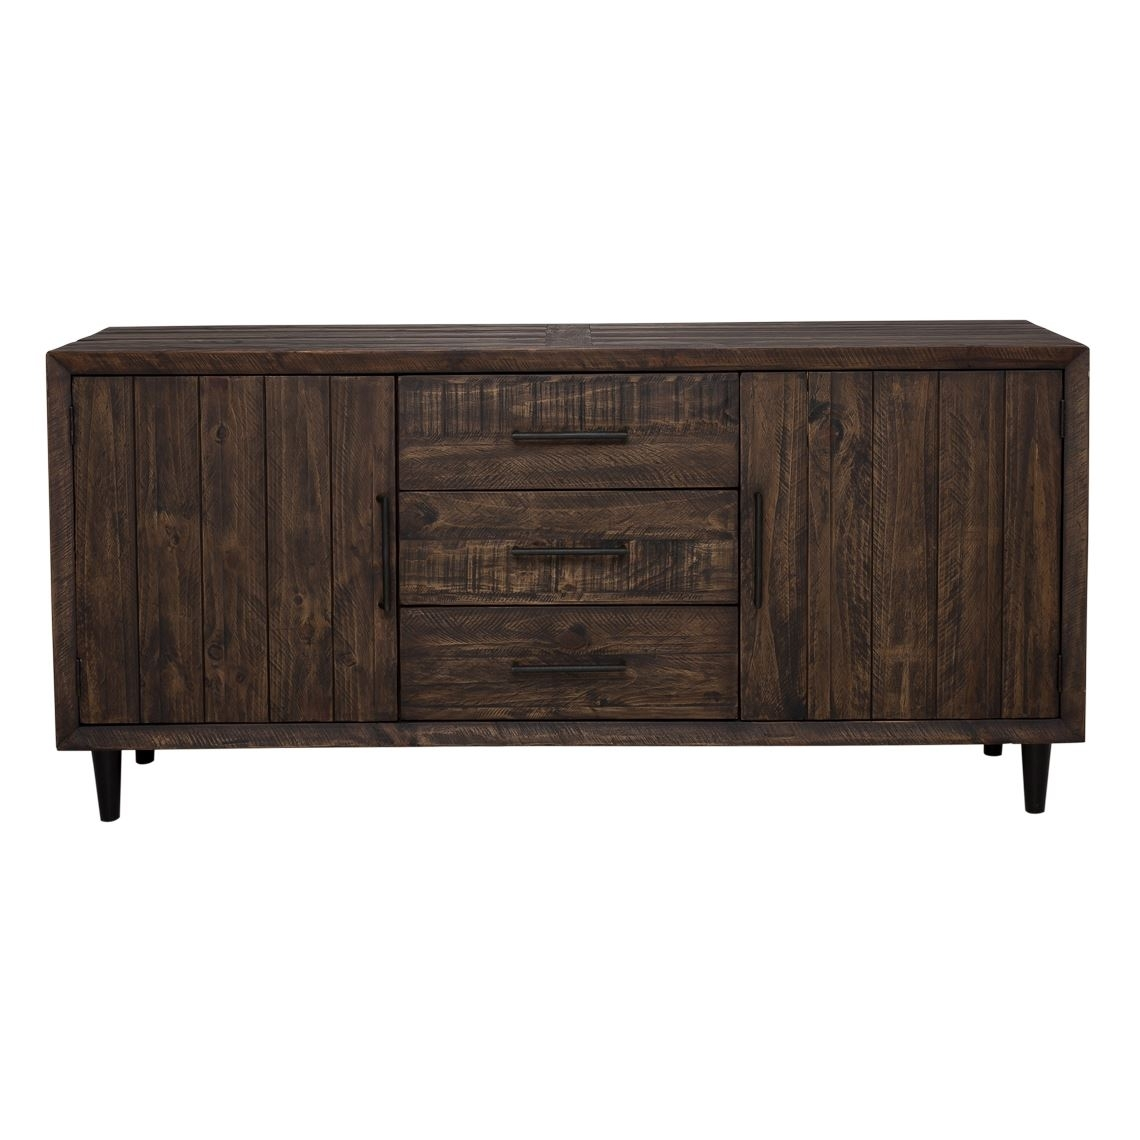 Freedom Furniture And Homewares Within Mango Wood Grey 4 Drawer 4 Door Sideboards (View 24 of 30)